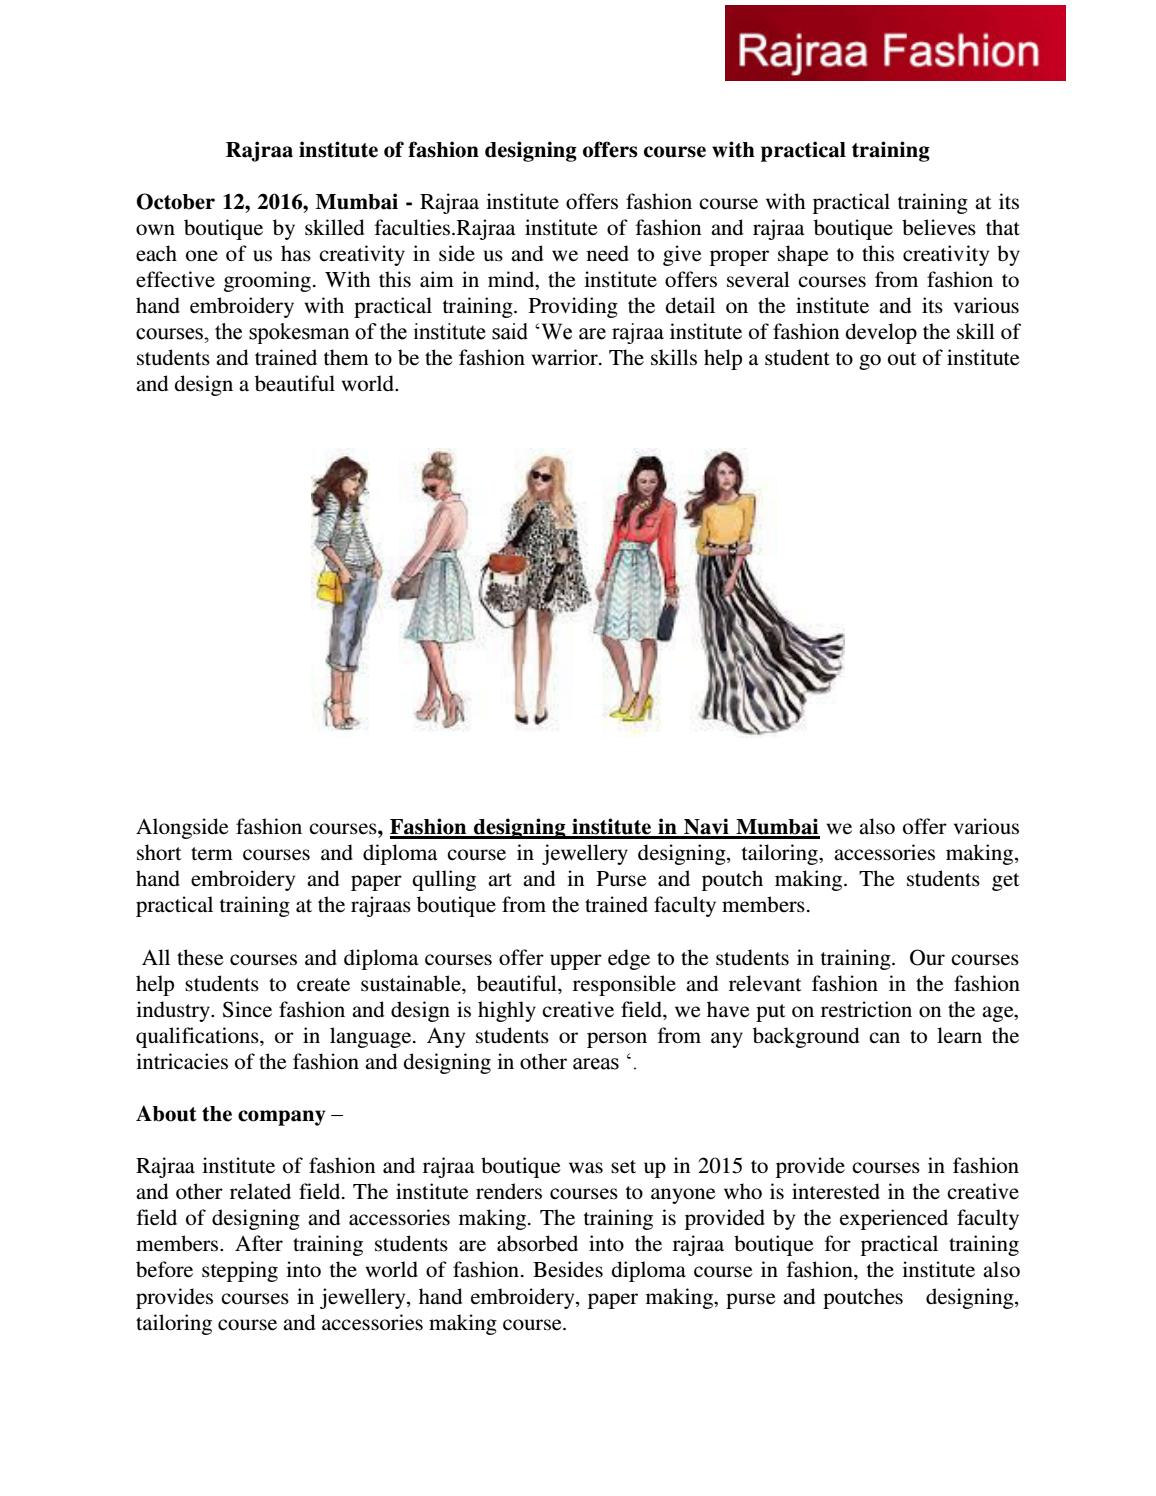 Rajraa Institute Of Fashion Designing Offers Course With Practical Training By Fashionr Issuu